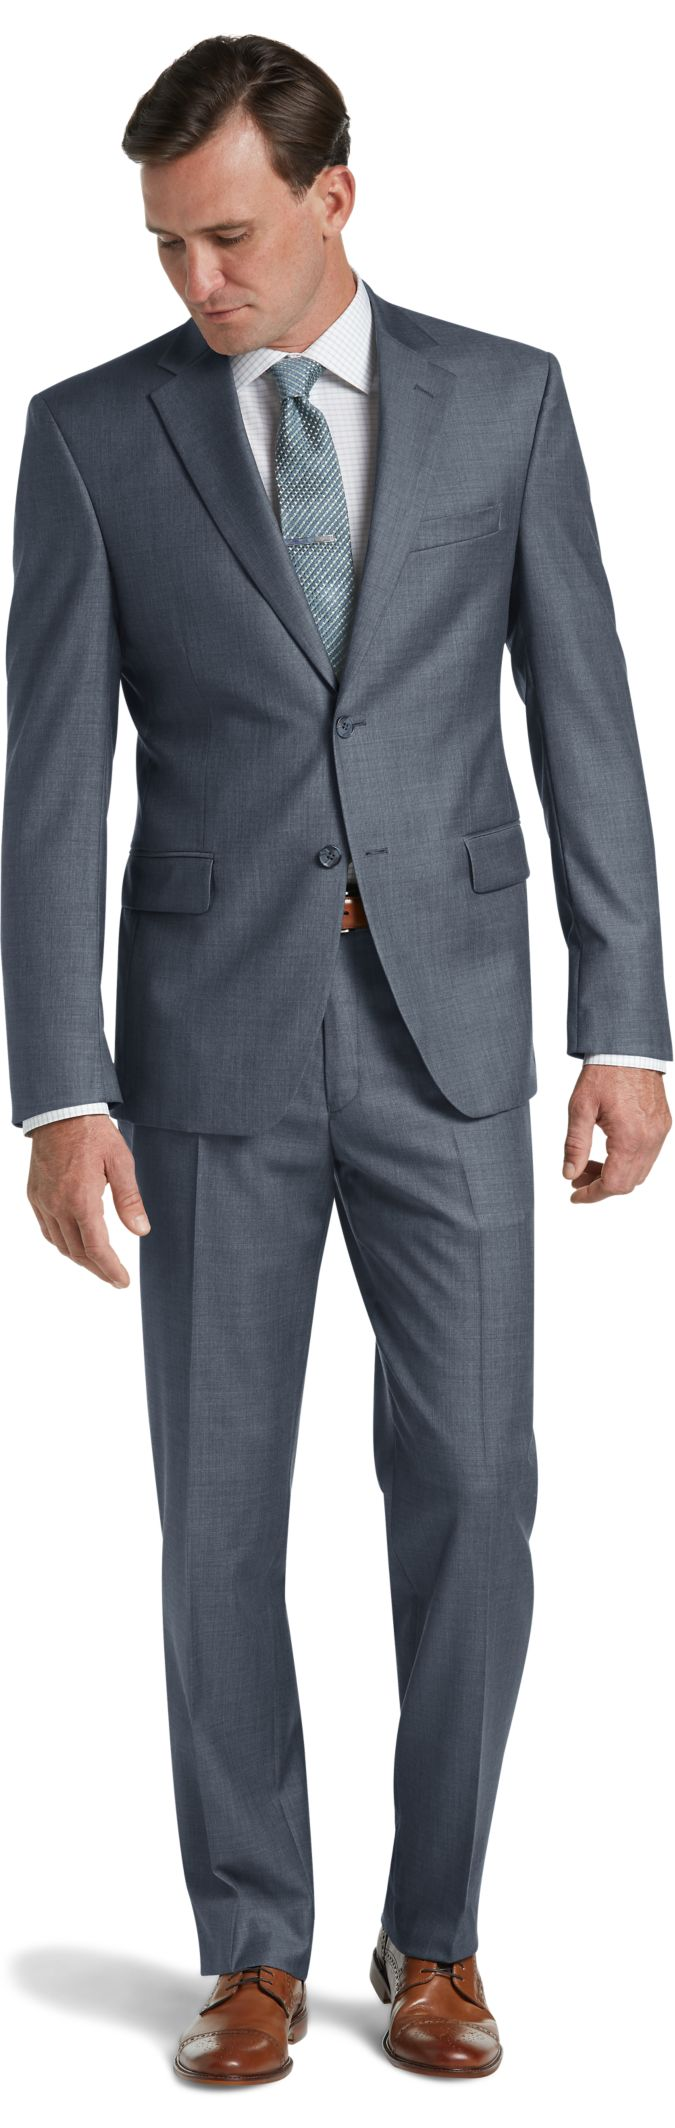 Traveler Collection Traditional Fit Sharkskin Suit